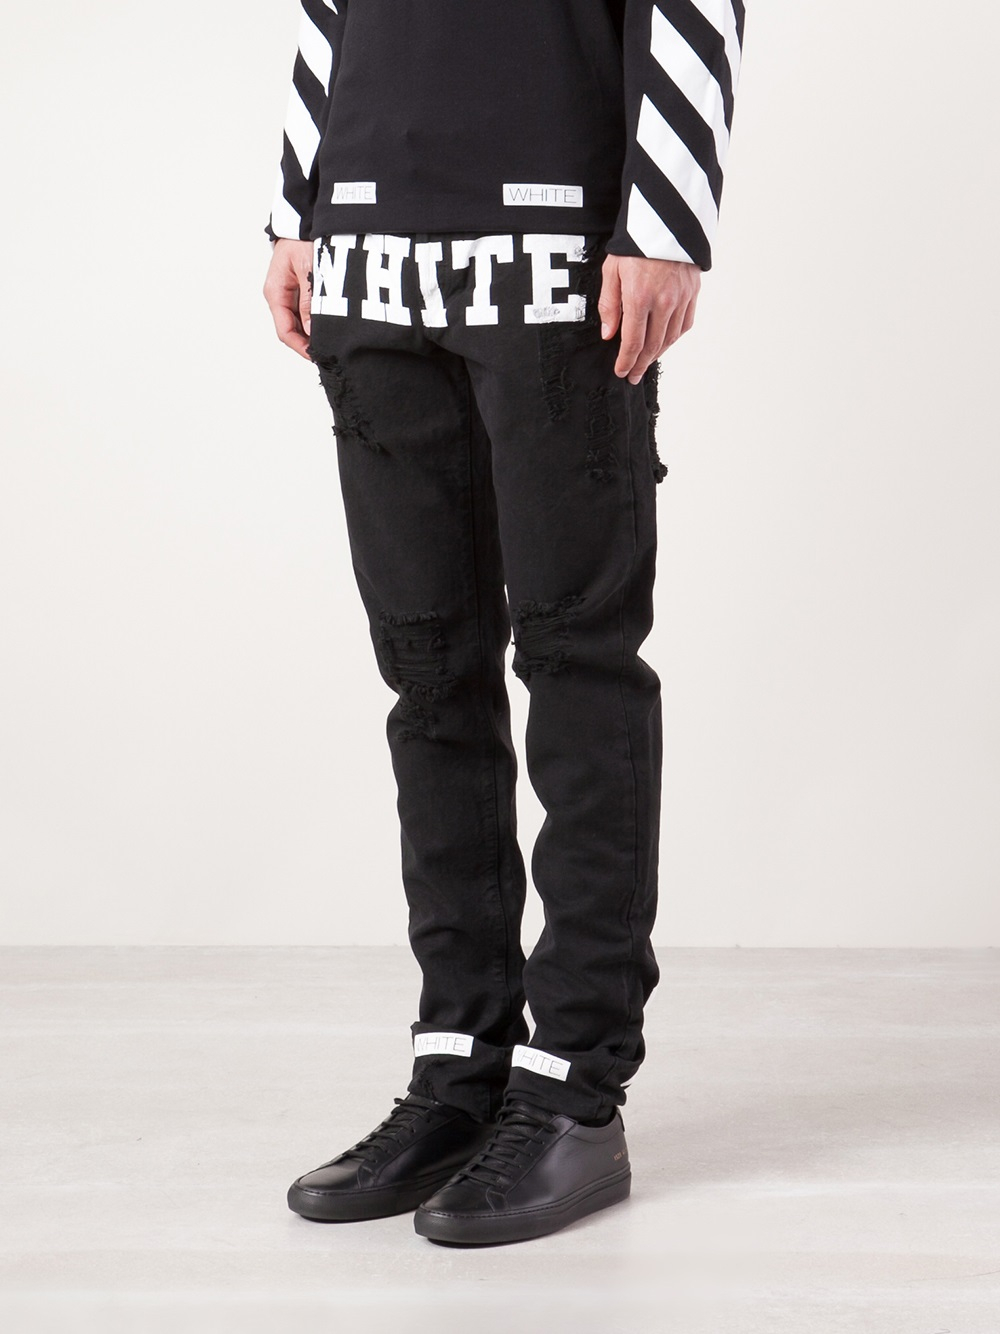 Off-white c/o virgil abloh Distressed Jeans in Black for Men | Lyst